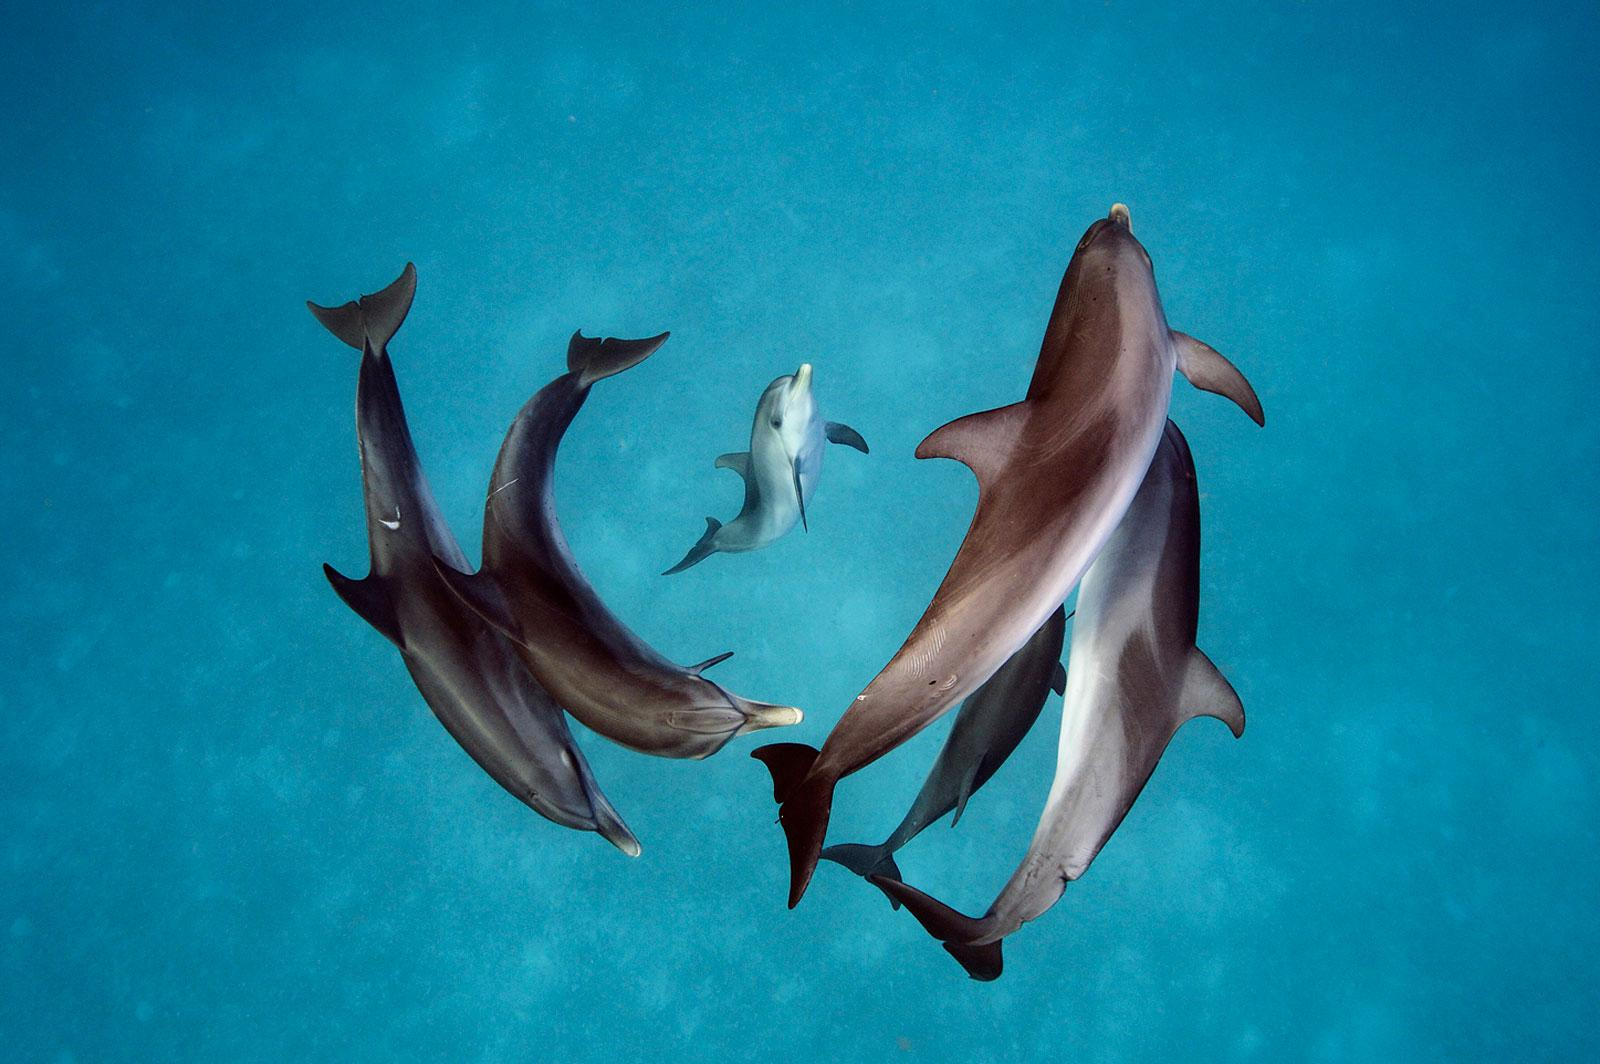 Spotted dolphins (Stenella frontalis) in the waters around Bimini in the Bahamas